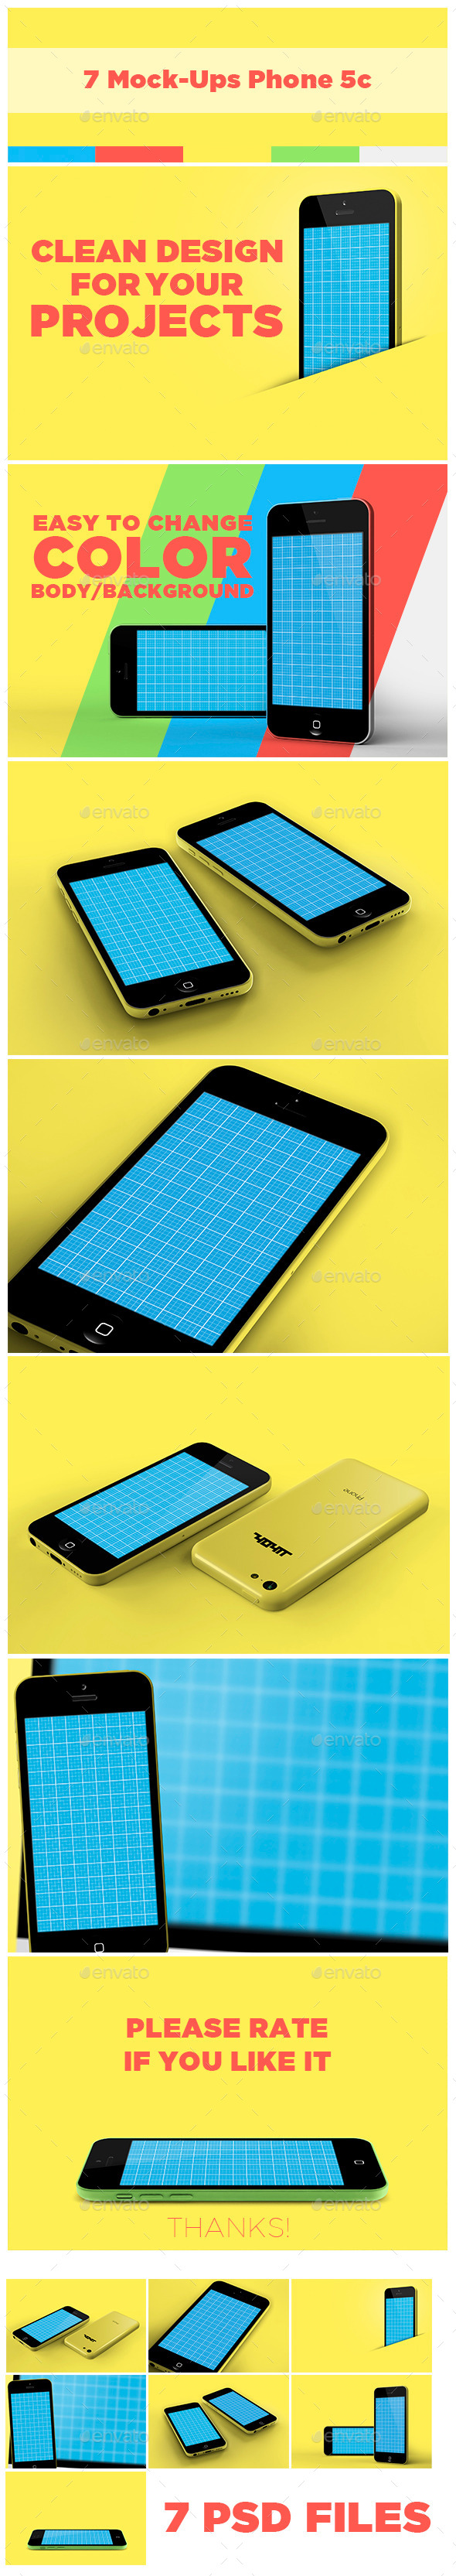 GraphicRiver 7 Mock-Ups Phone 5c 10227507